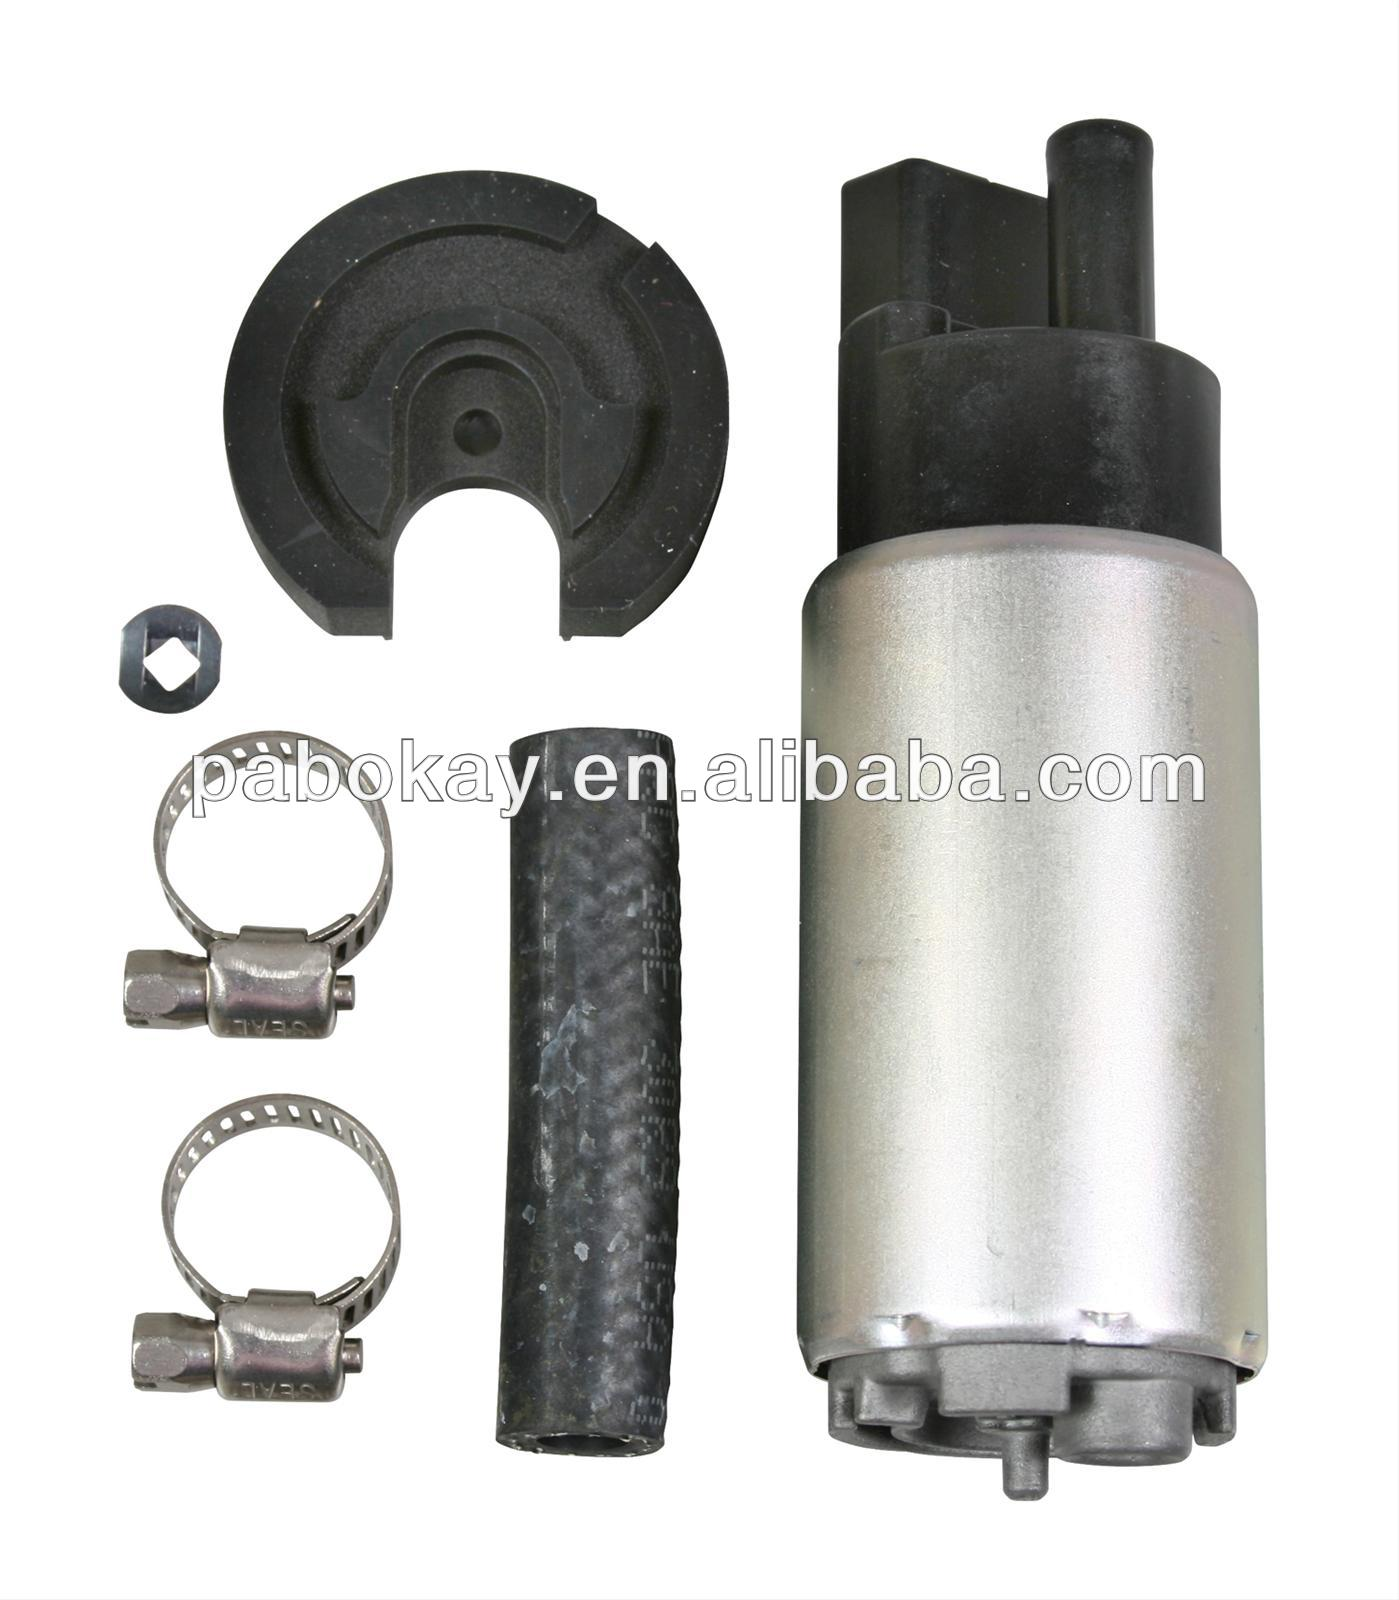 Fit For Acura INFUEL PUMP E8335 EP488 7789626 2112-139010-01 0580453477 0580453453 0580453483